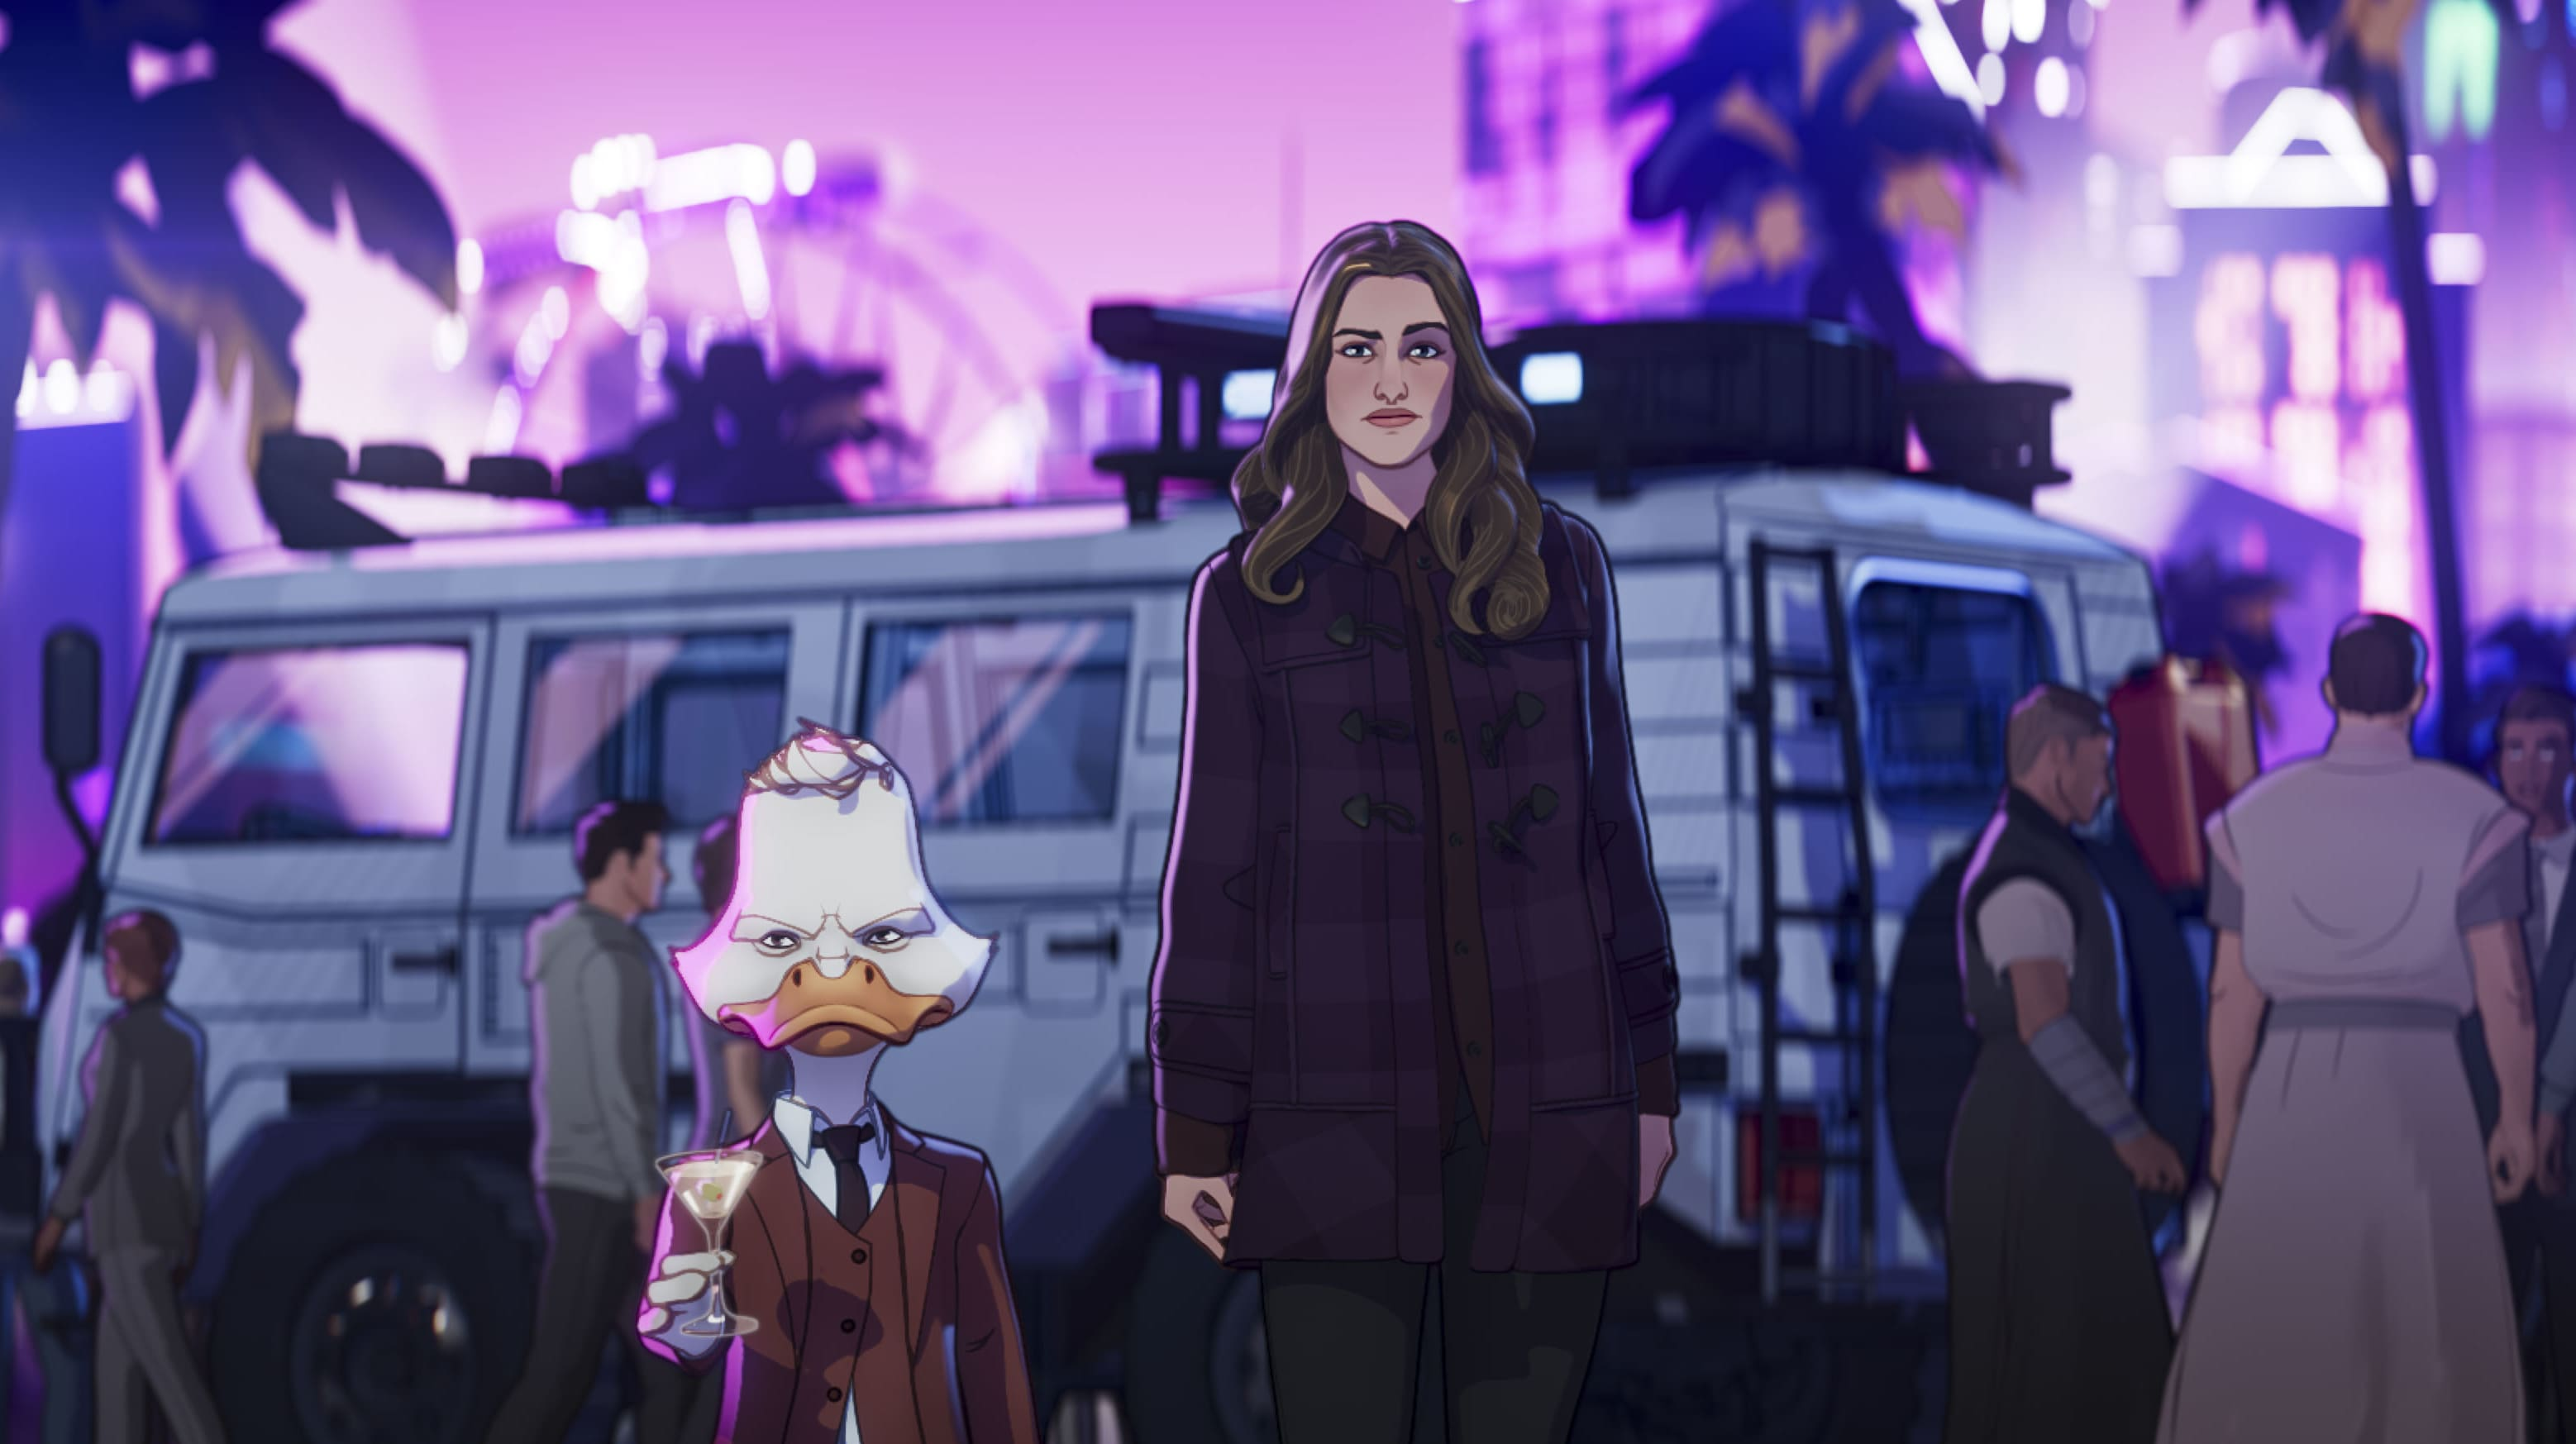 Howard the Duck and Darcy in Marvel Studios' WHAT IF…? exclusively on Disney+. ©Marvel Studios 2021. All Rights Reserved.